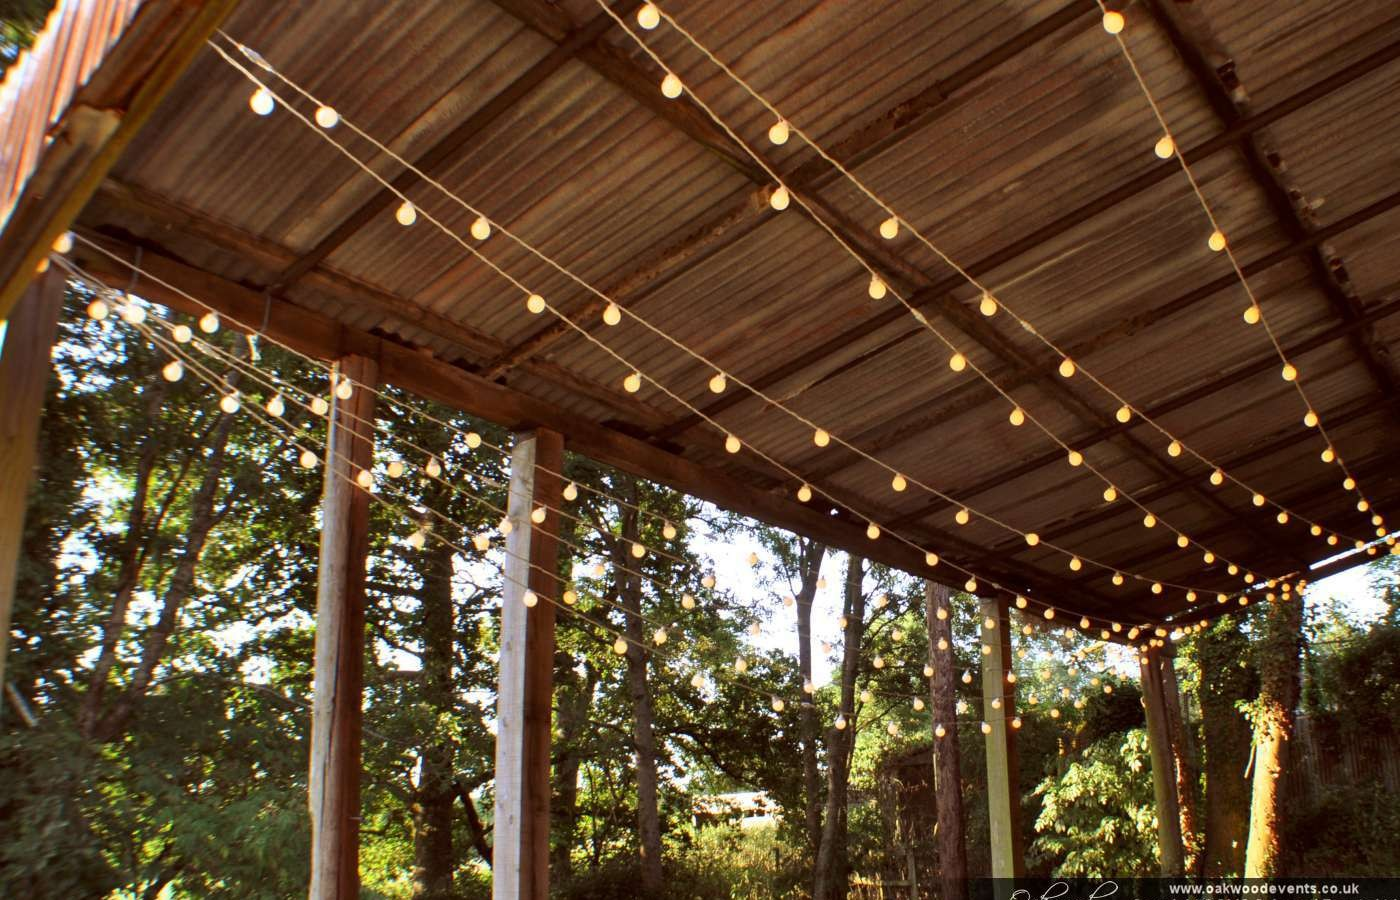 Http Www Oakwoodevents Co Uk Blog Outdoor Festoon Lights